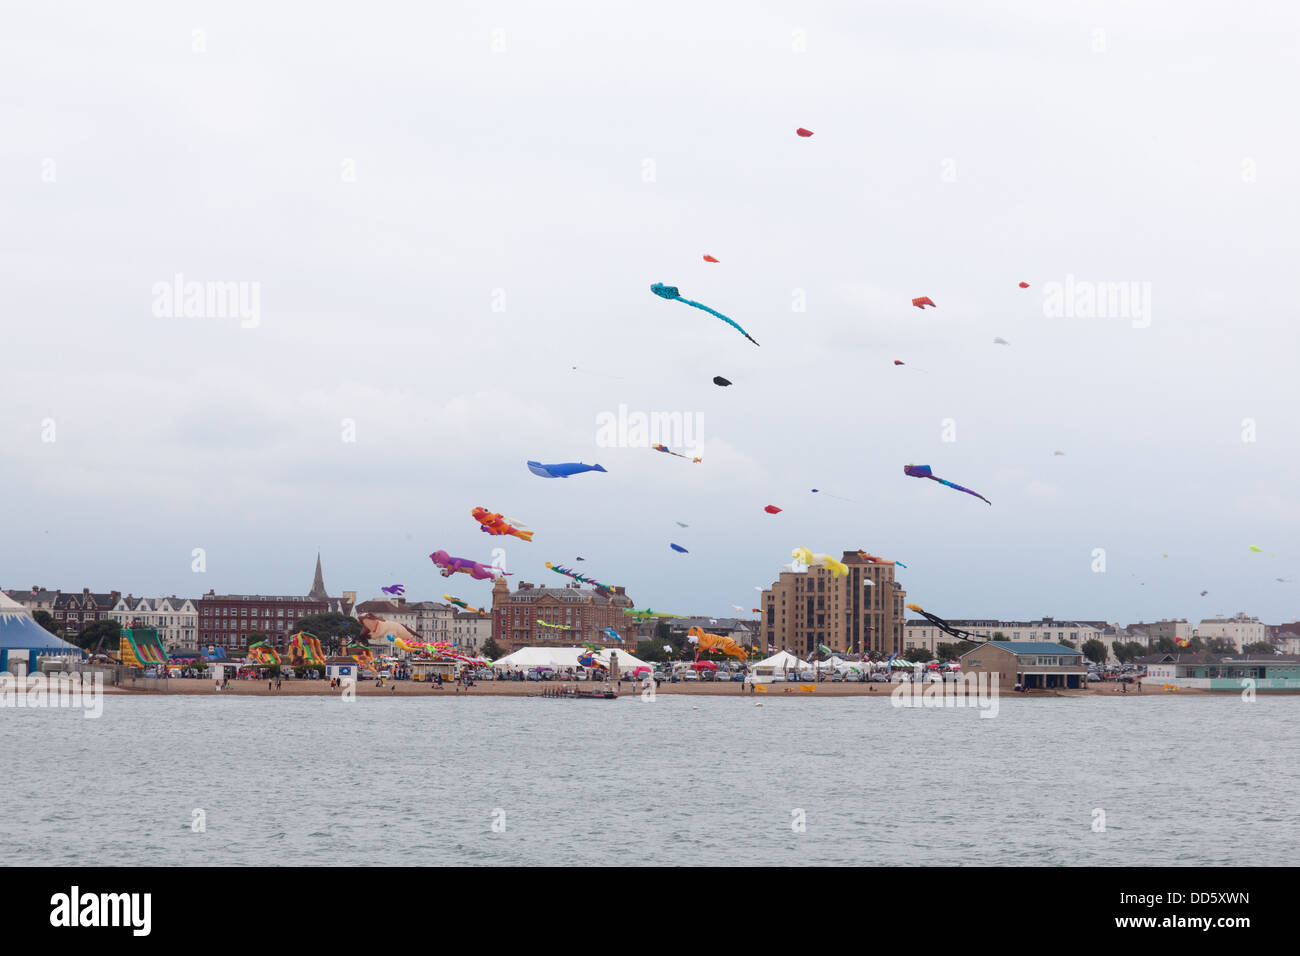 Portsmouth International Kite Festival, Southsea Common,Clarence Esplanade,Southsea,Portsmouth,England, U.K Stock Photo